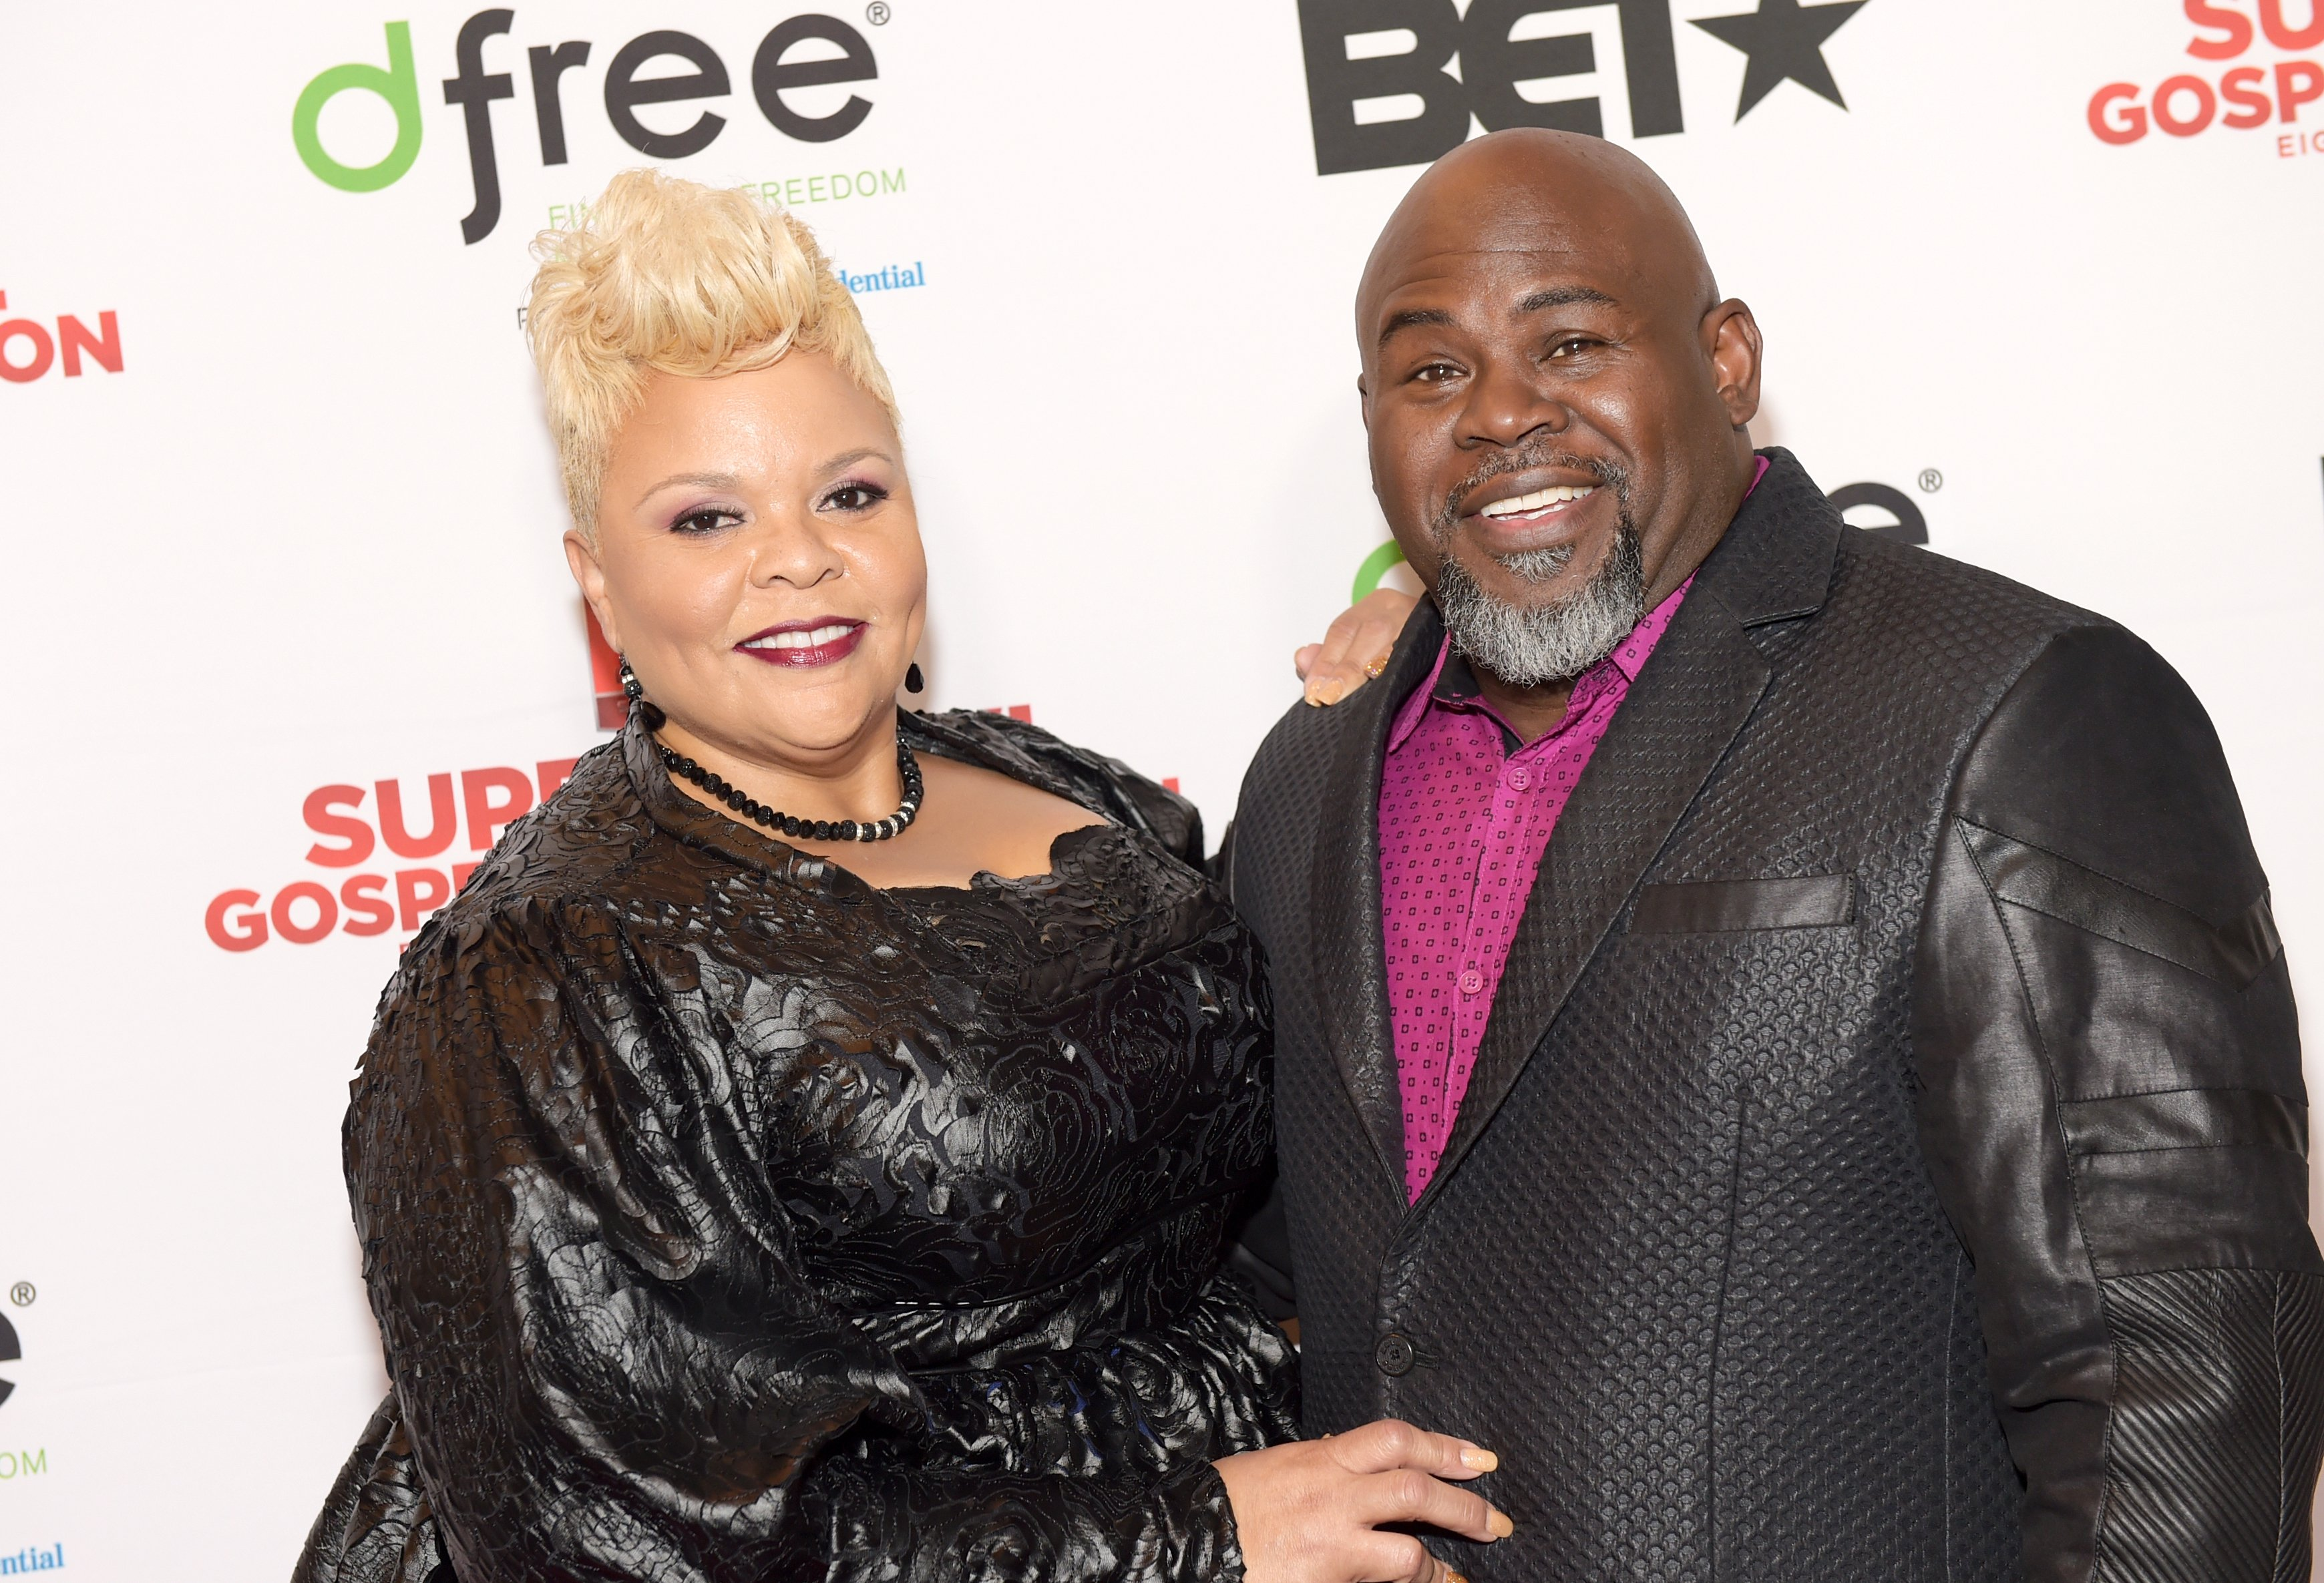 Tamela Mann and David Mann attend the BET Presents Super Bowl Gospel Celebration at Lakewood Church on February 3, 2017 in Houston, Texas.   Photo: Getty Images